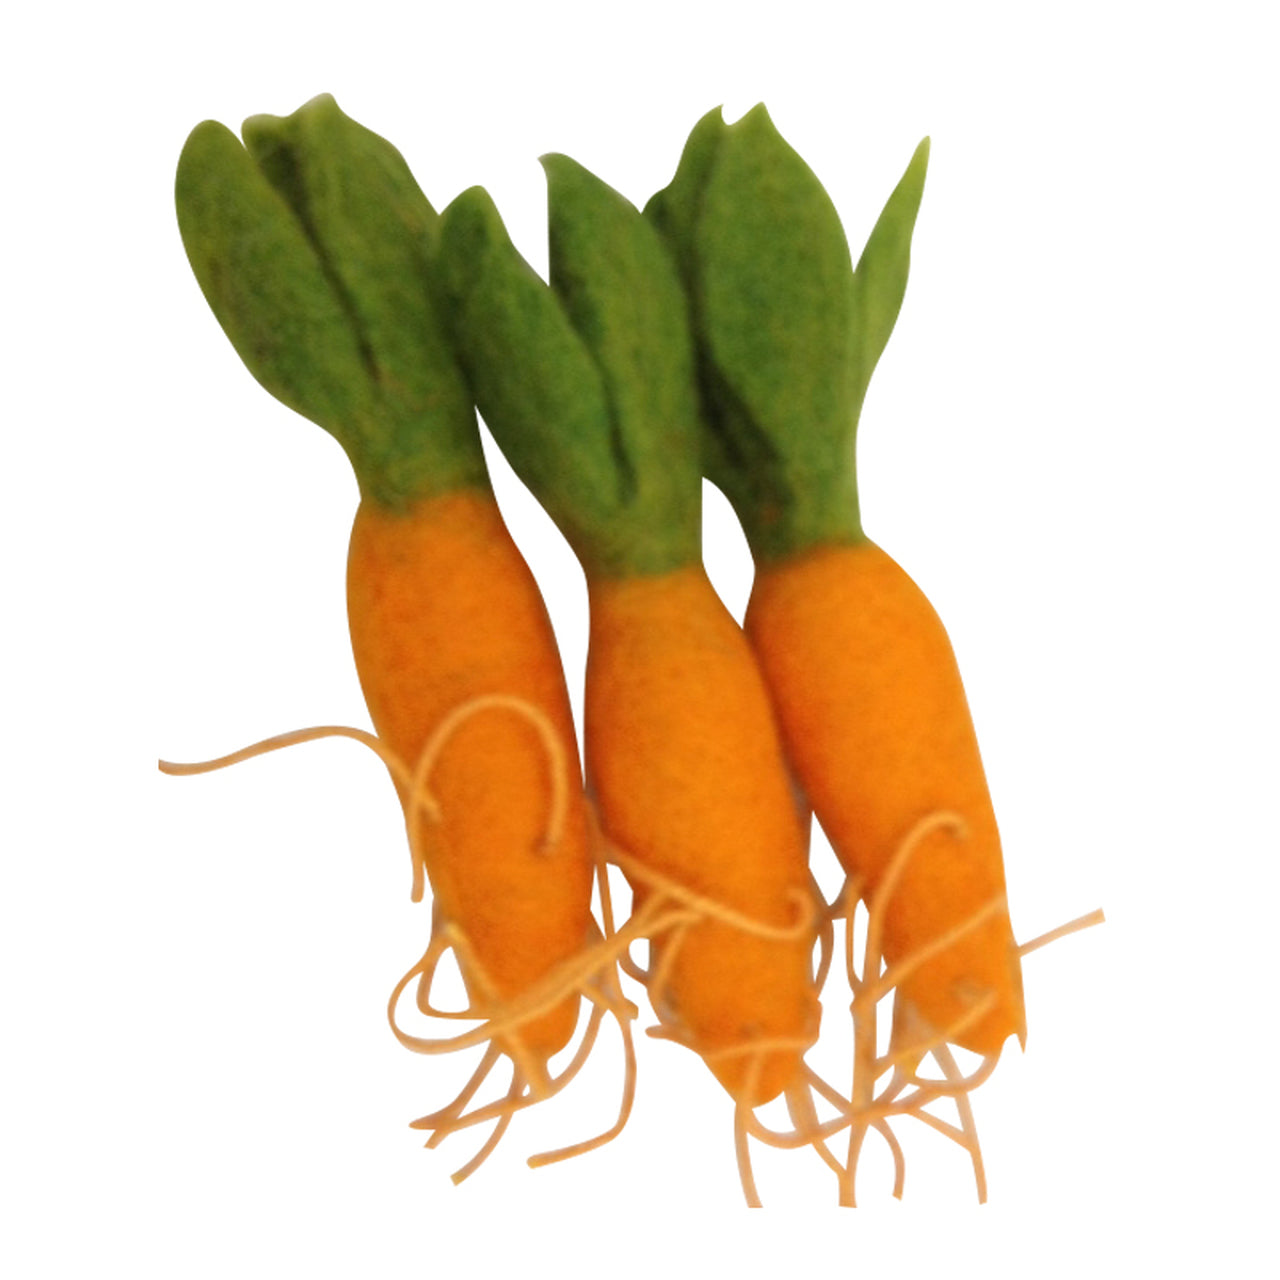 Mini Carrot Set of 3